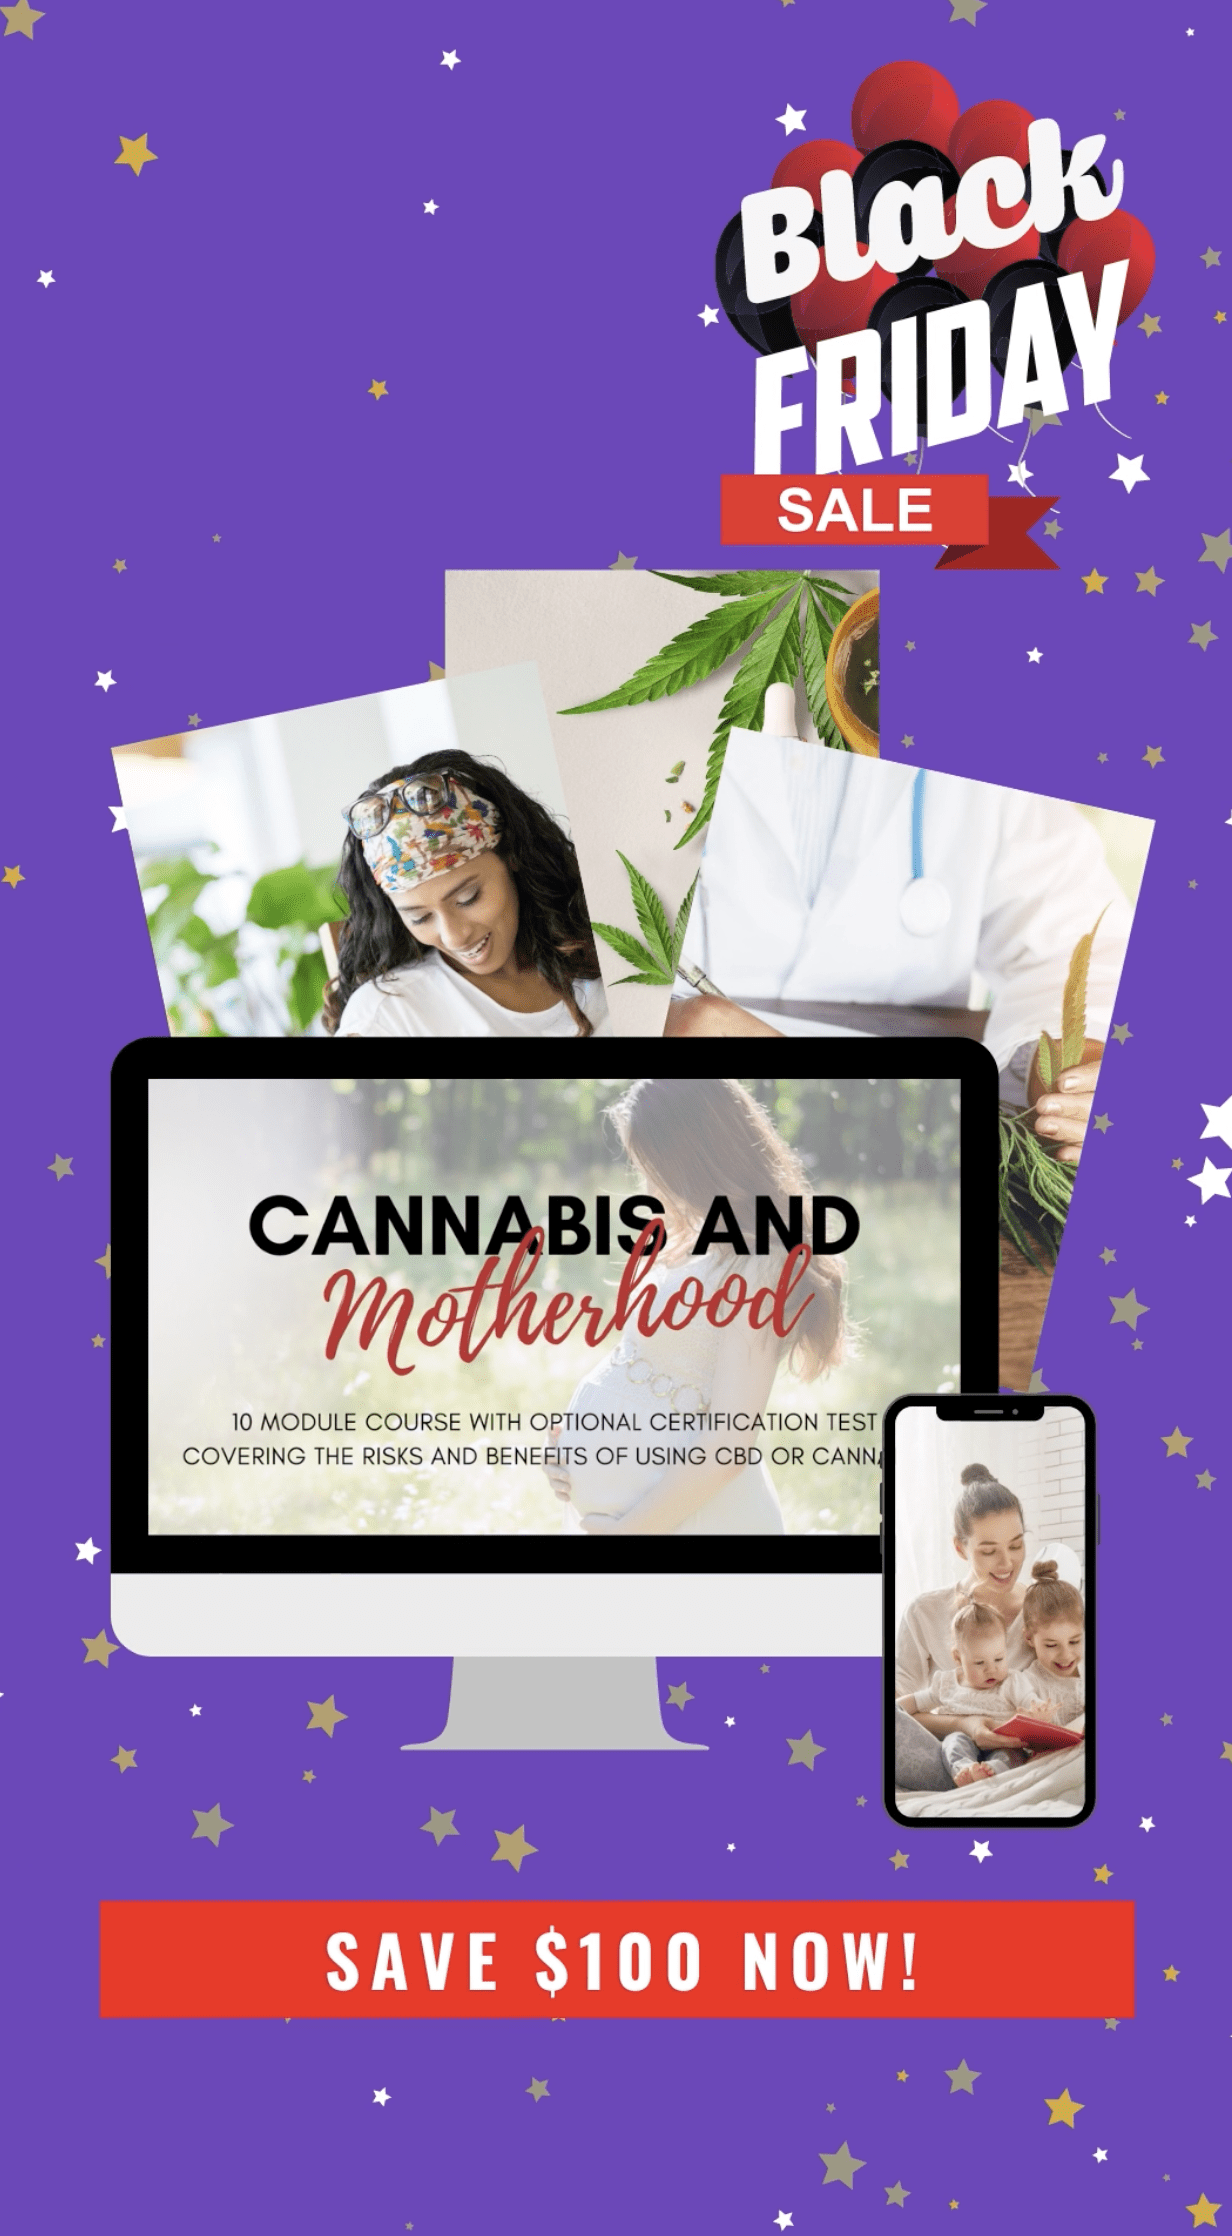 Black Friday 2020 Deals On Cannabis Books and Courses